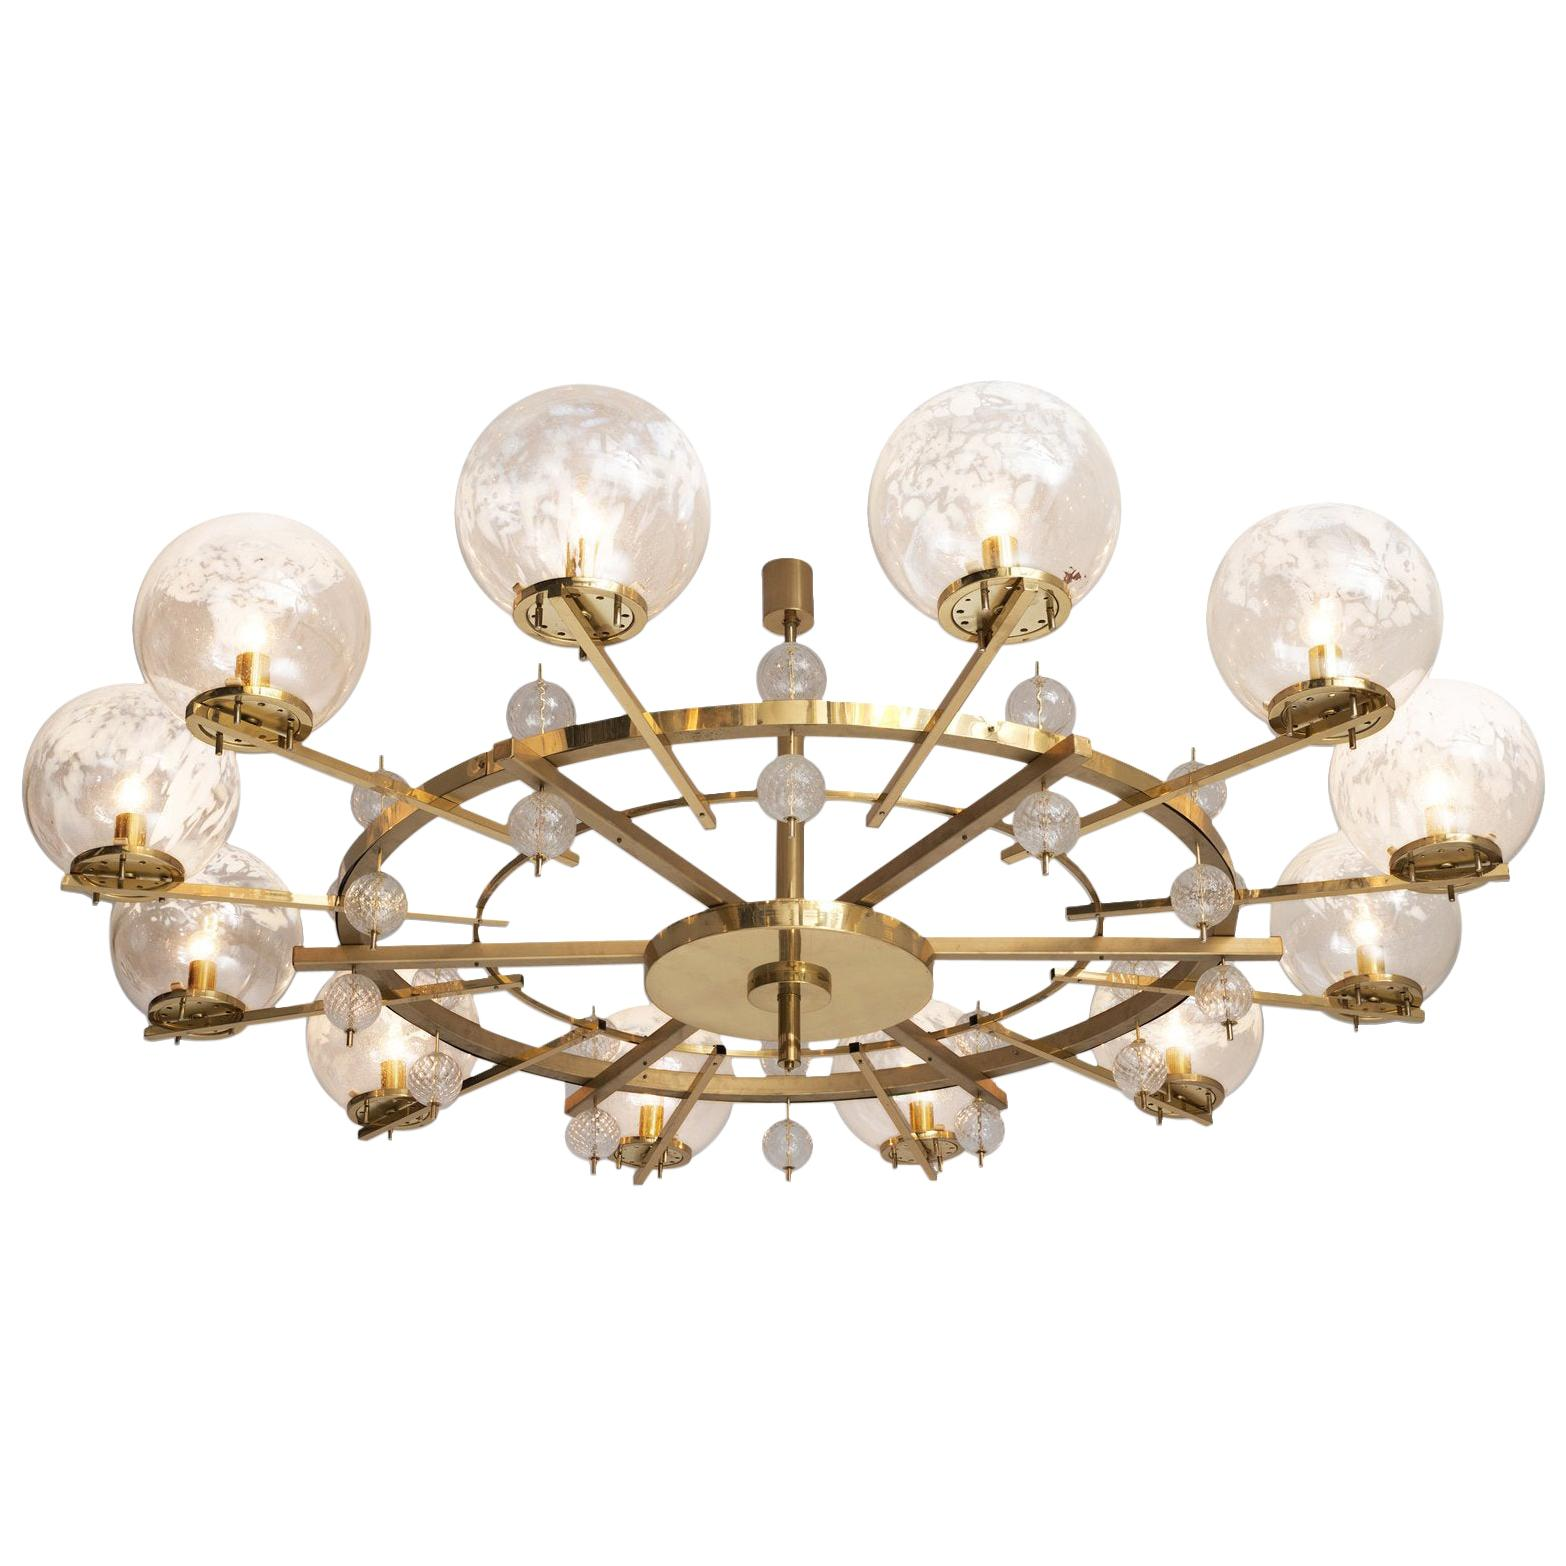 Chandelier in Brass and Art-Glass Spheres